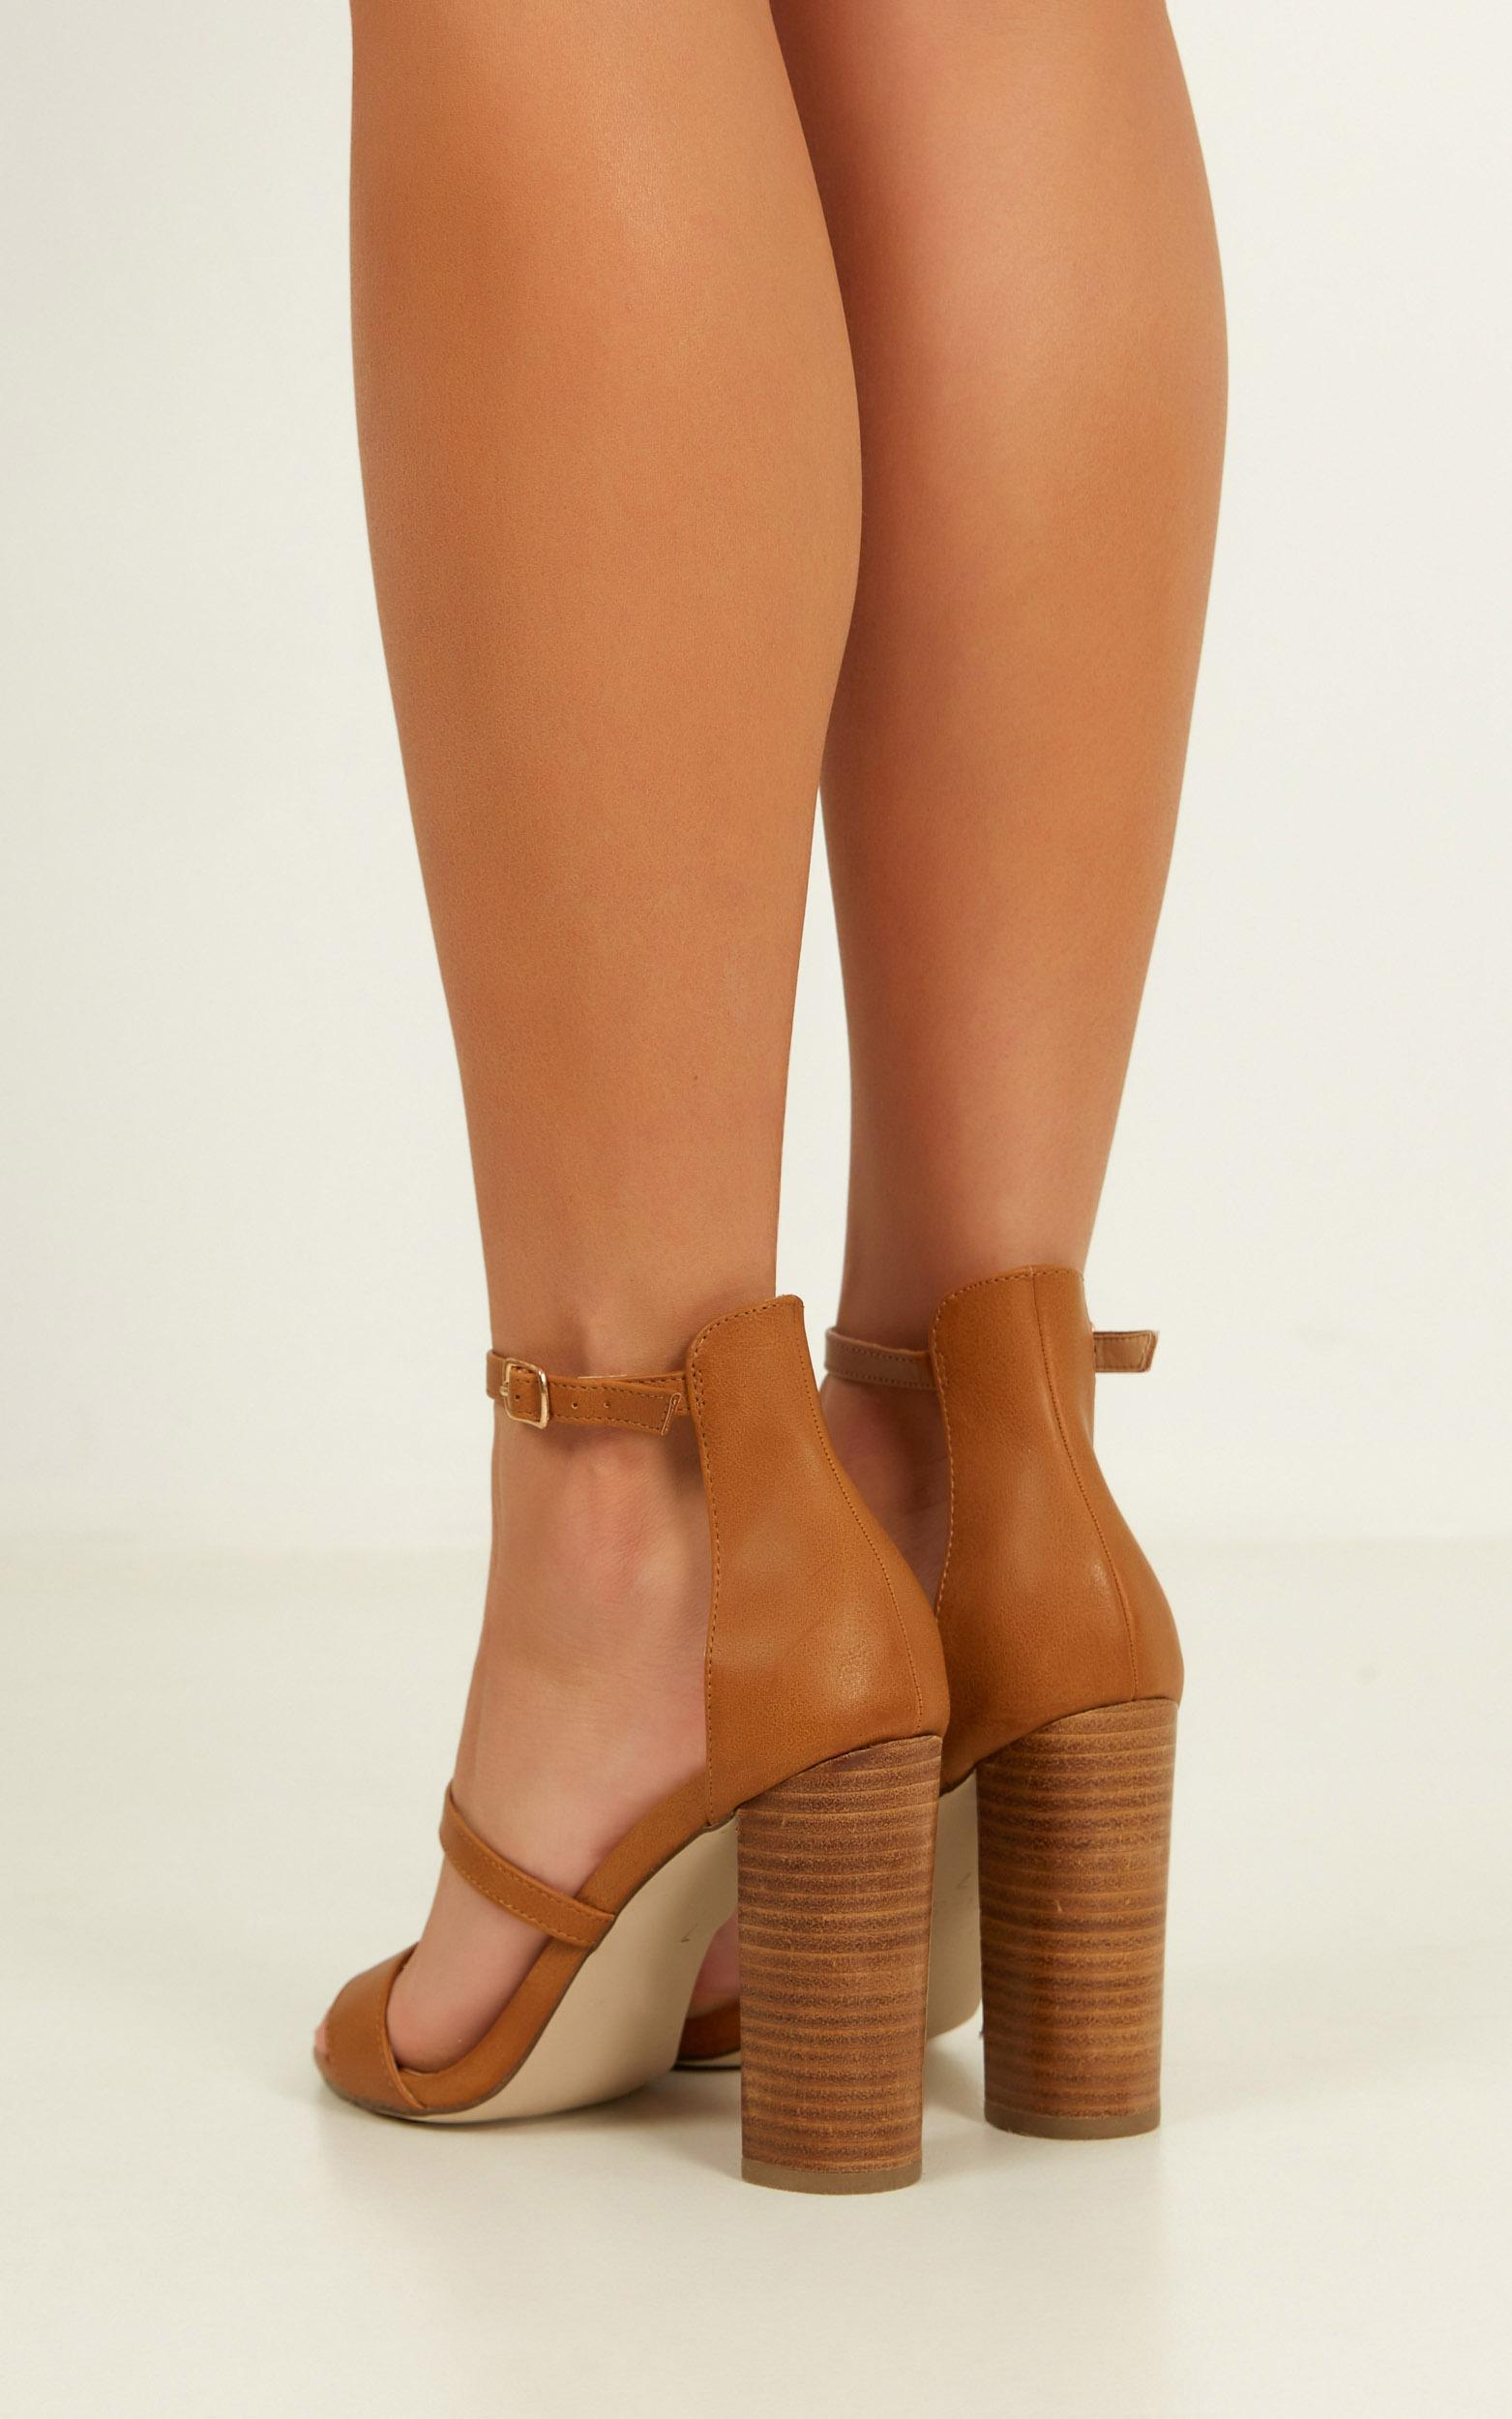 Verali - Bubba heels in tan smooth - 10, Tan, hi-res image number null